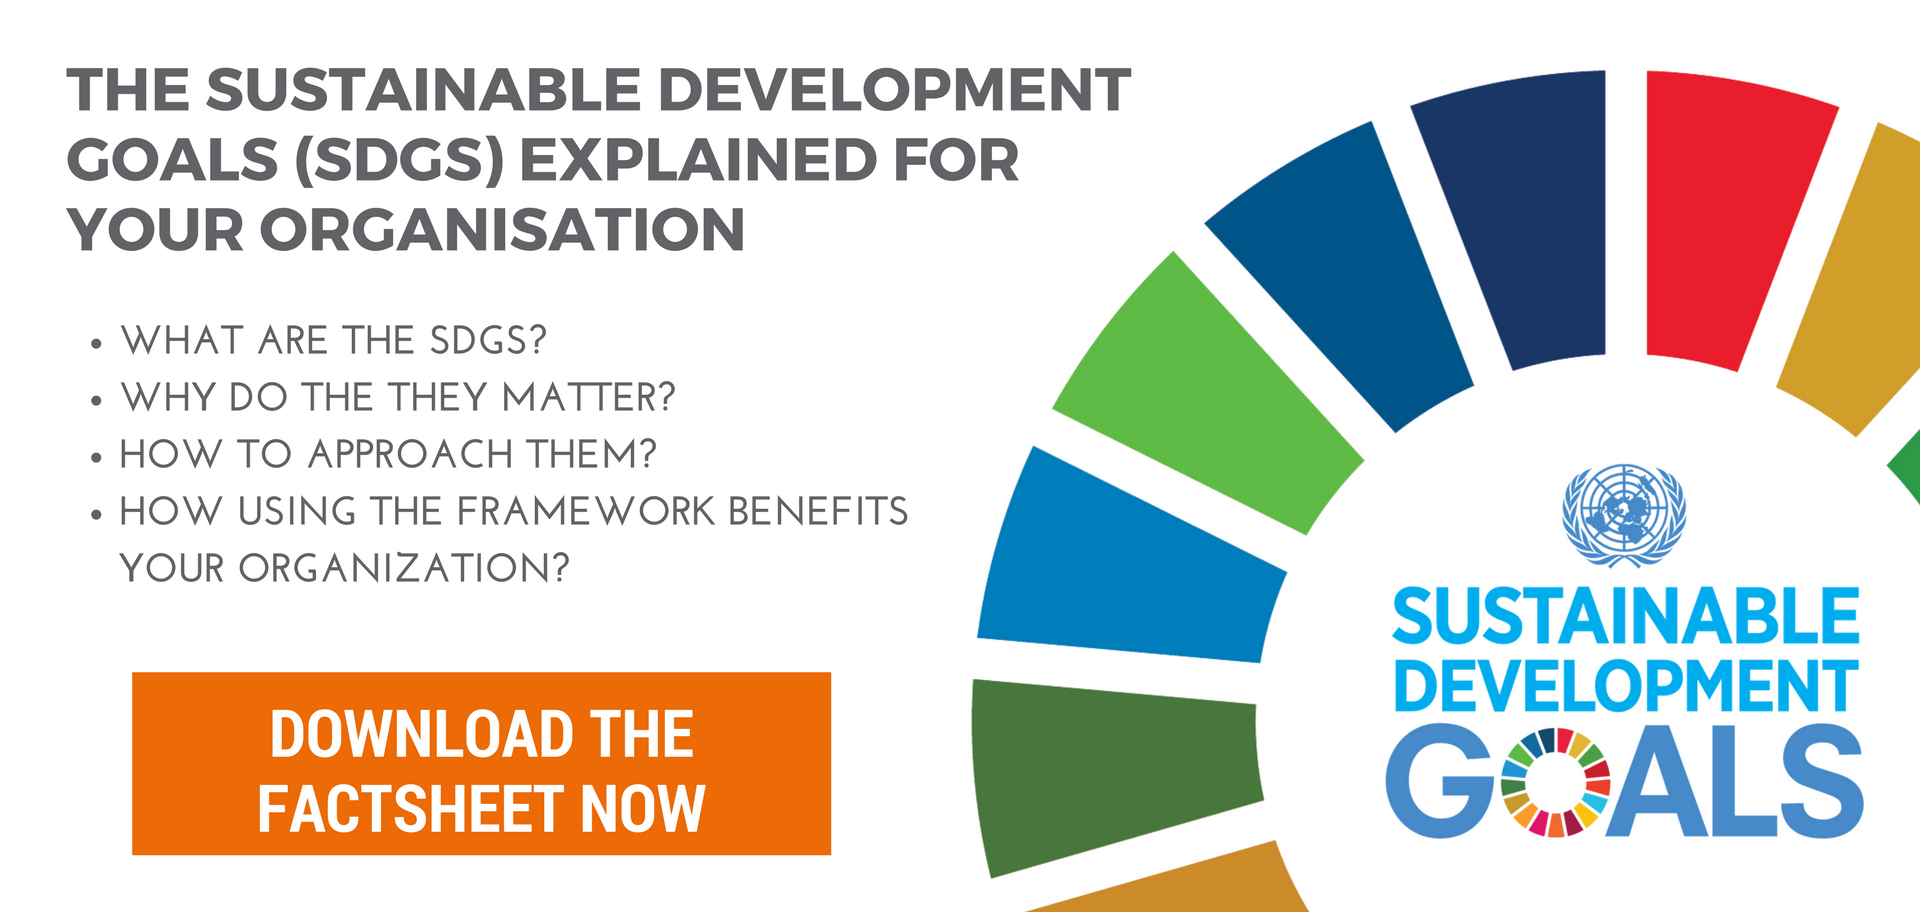 The Sustainable Development Goals explained for your organisation - download now